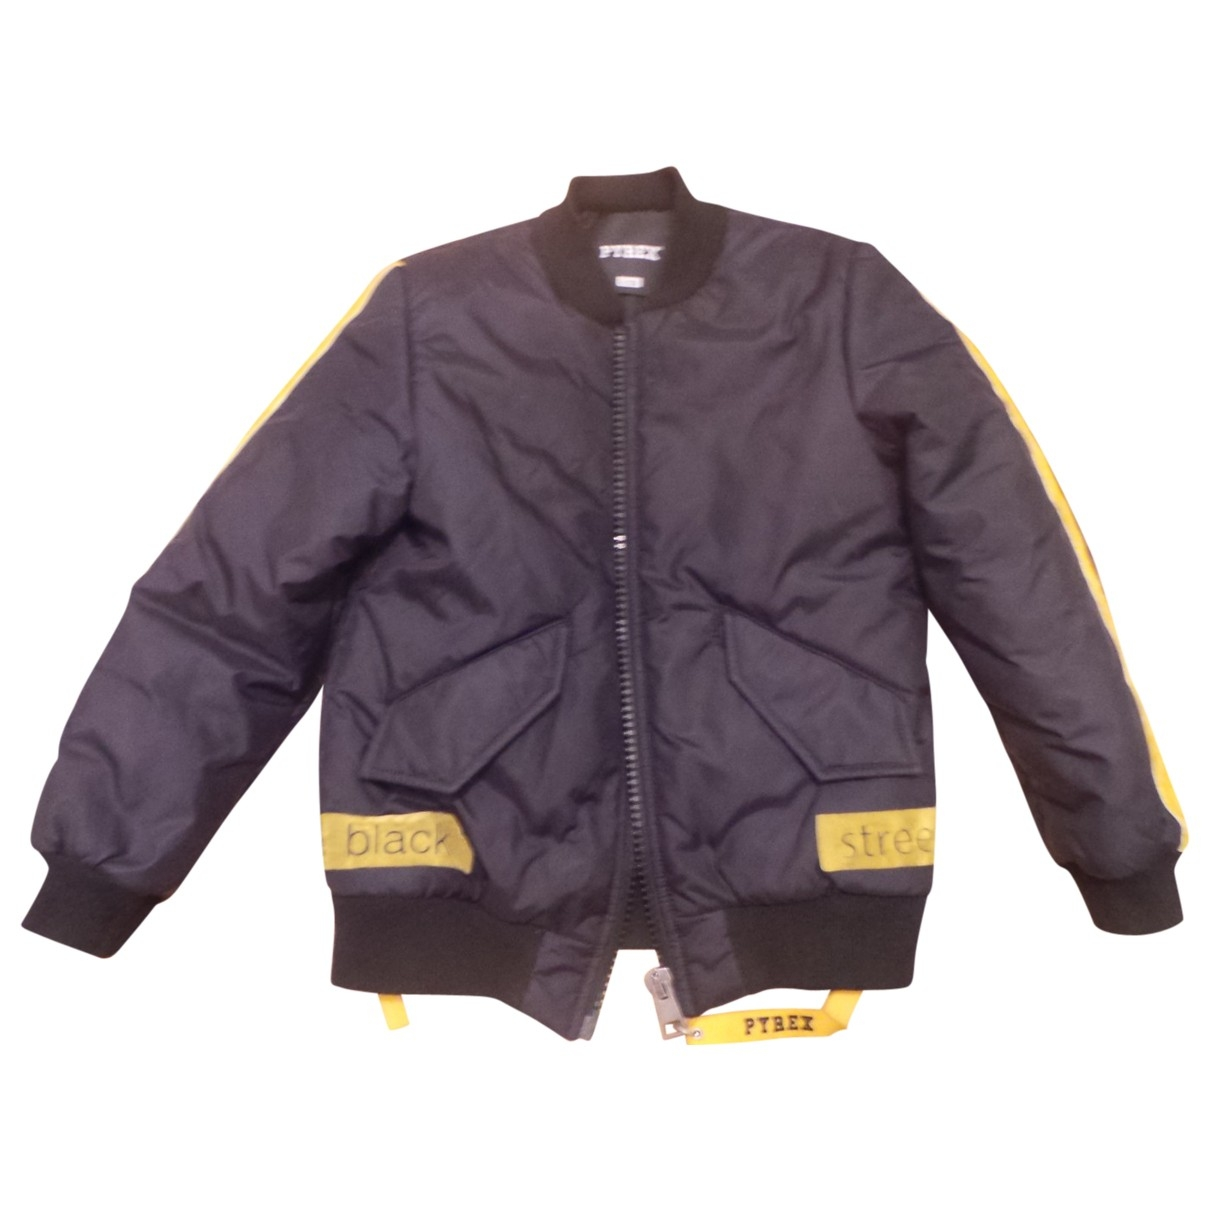 Pyrex \N Black jacket & coat for Kids 6 years - until 45 inches UK